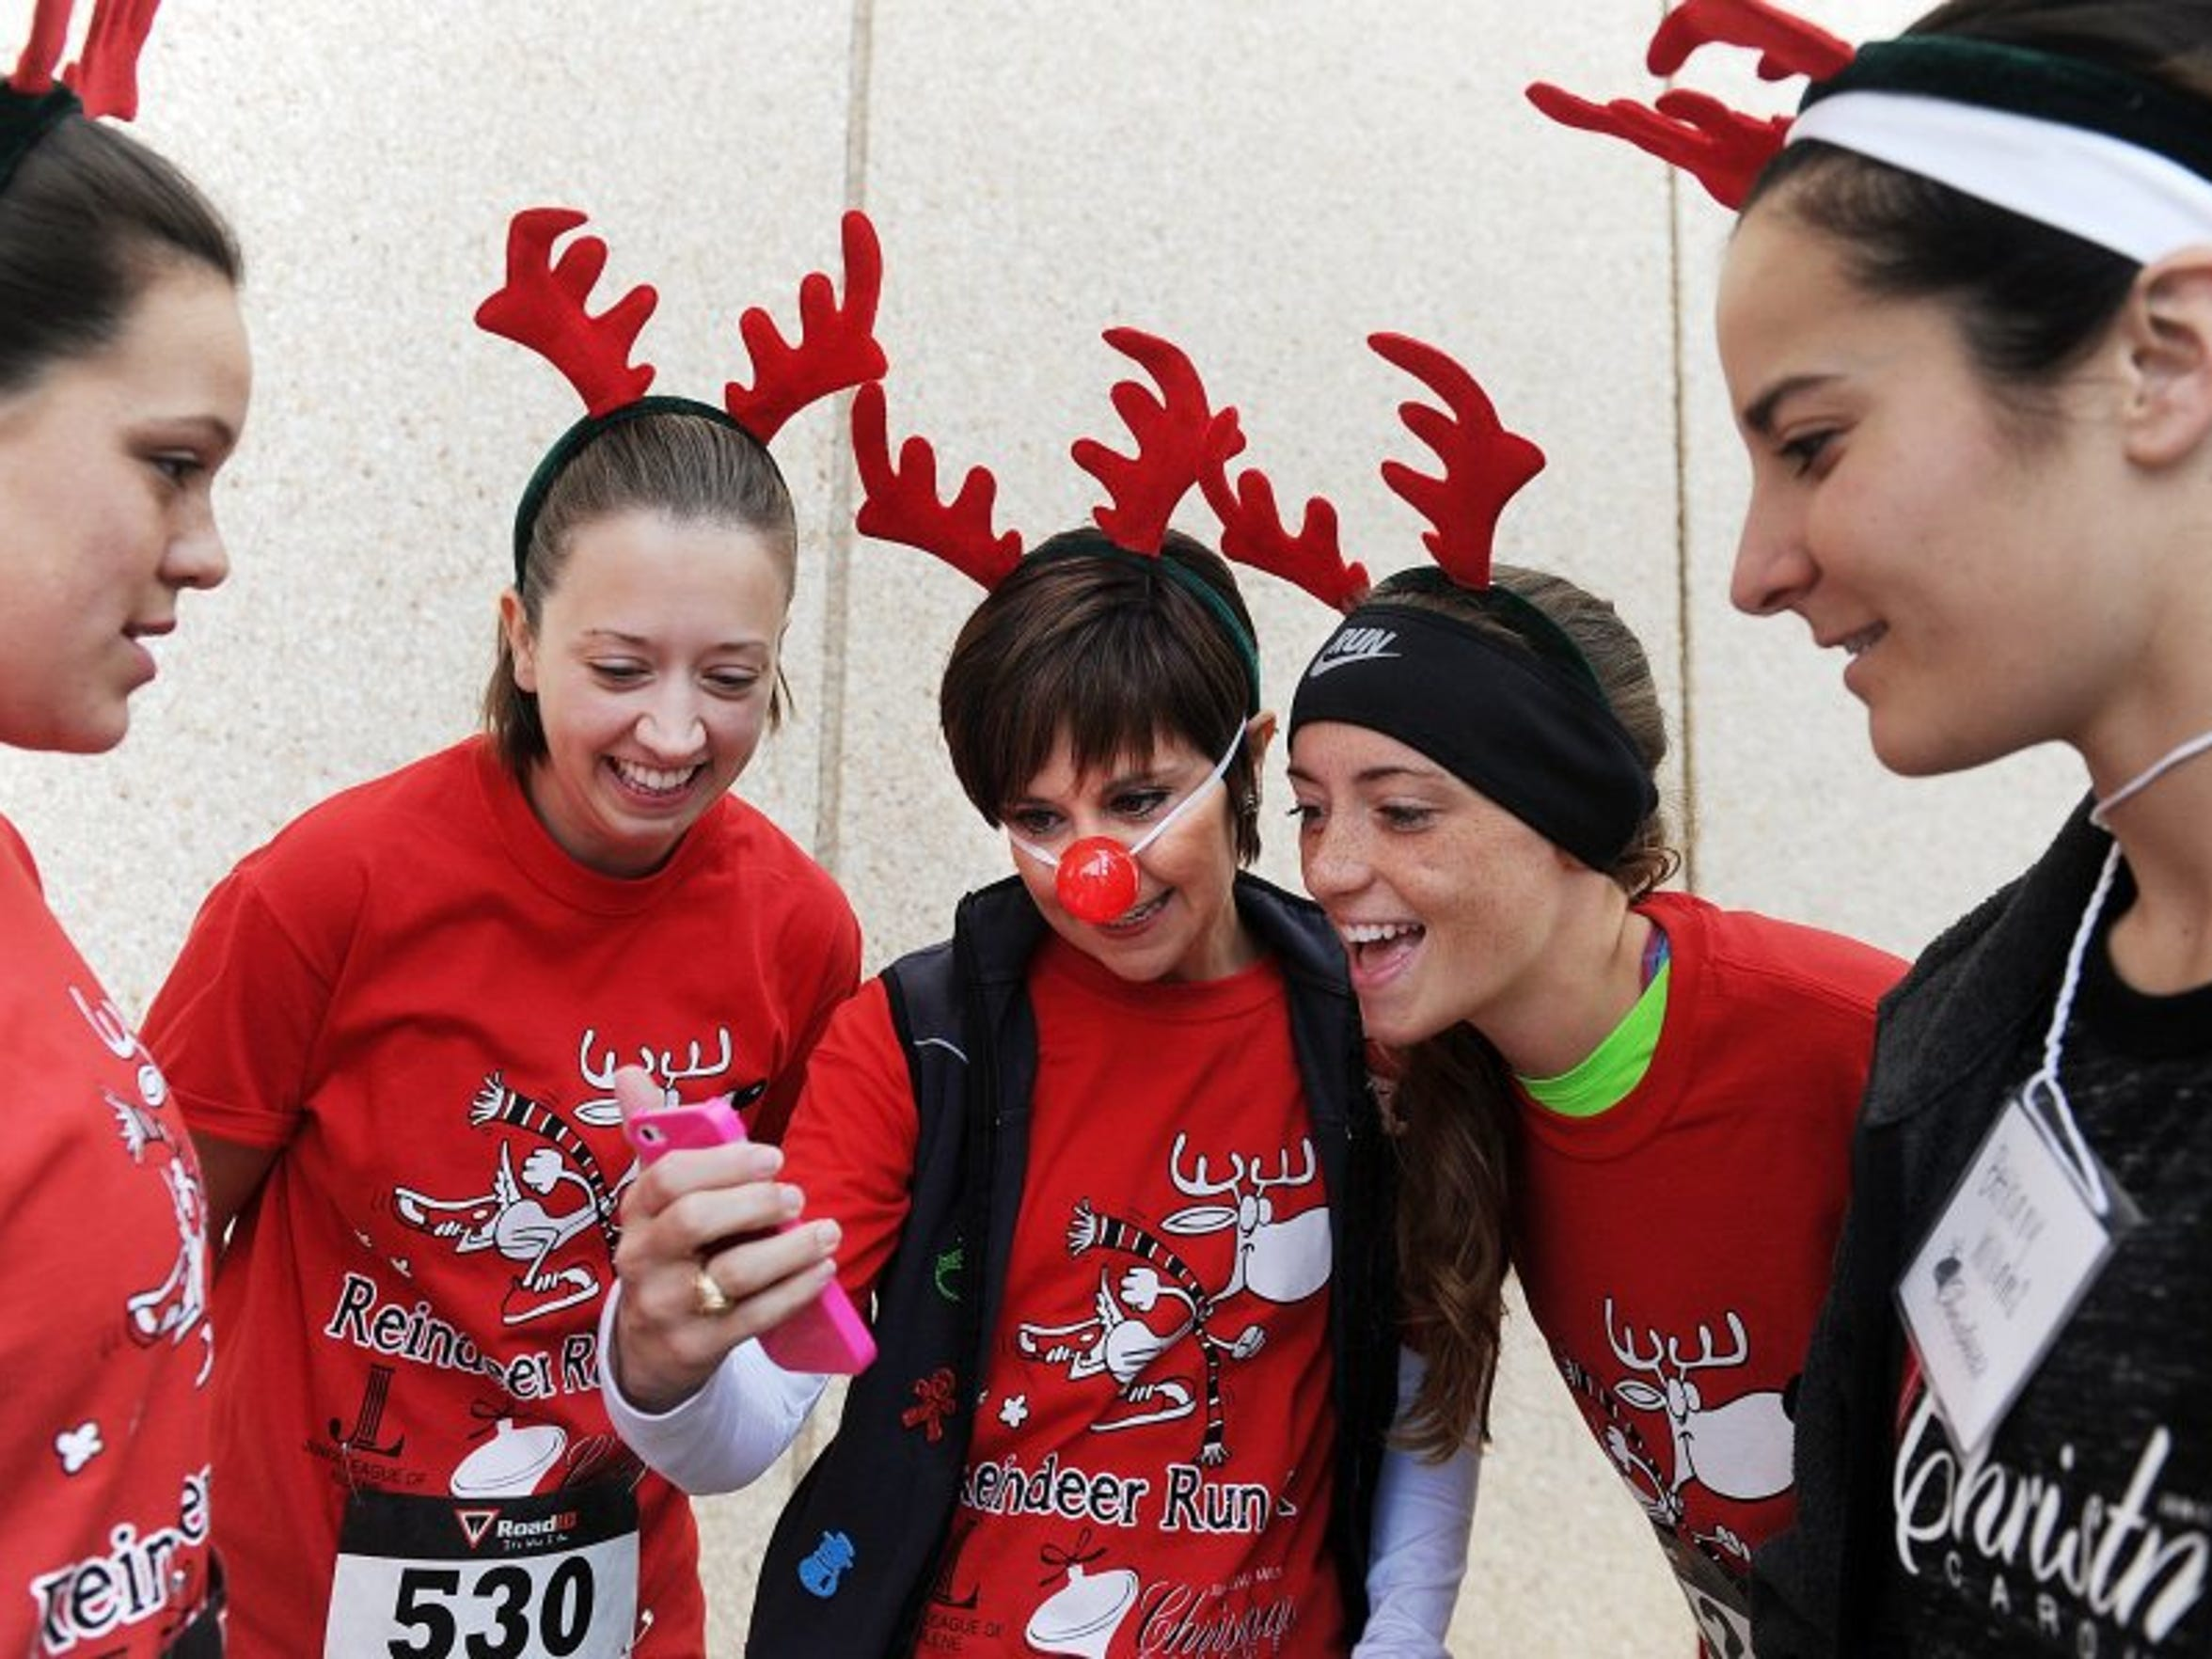 Reindeer Run participants from left, Hailey Presley, Megan Baldree, Vanessa Bryan, Holiday Williams and Bethany Williams check a group picture before starting their 5-kilometer run organized by Junior League of Abilene in 2014.